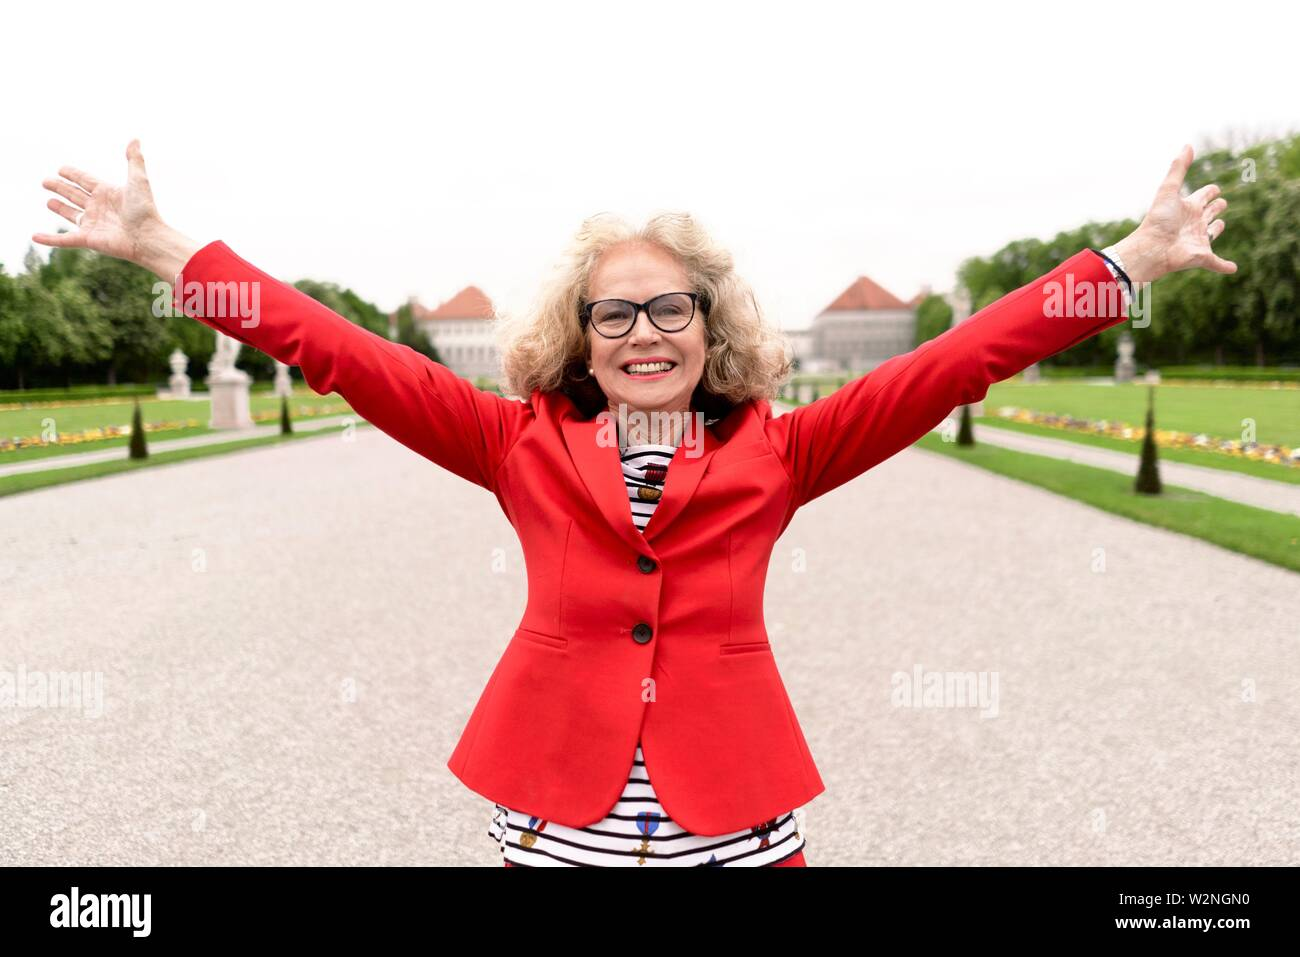 happy senior woman (67 years old) stretching arms in park at touristic sight Nymphenburg palace, in Munich, Germany. - Stock Image